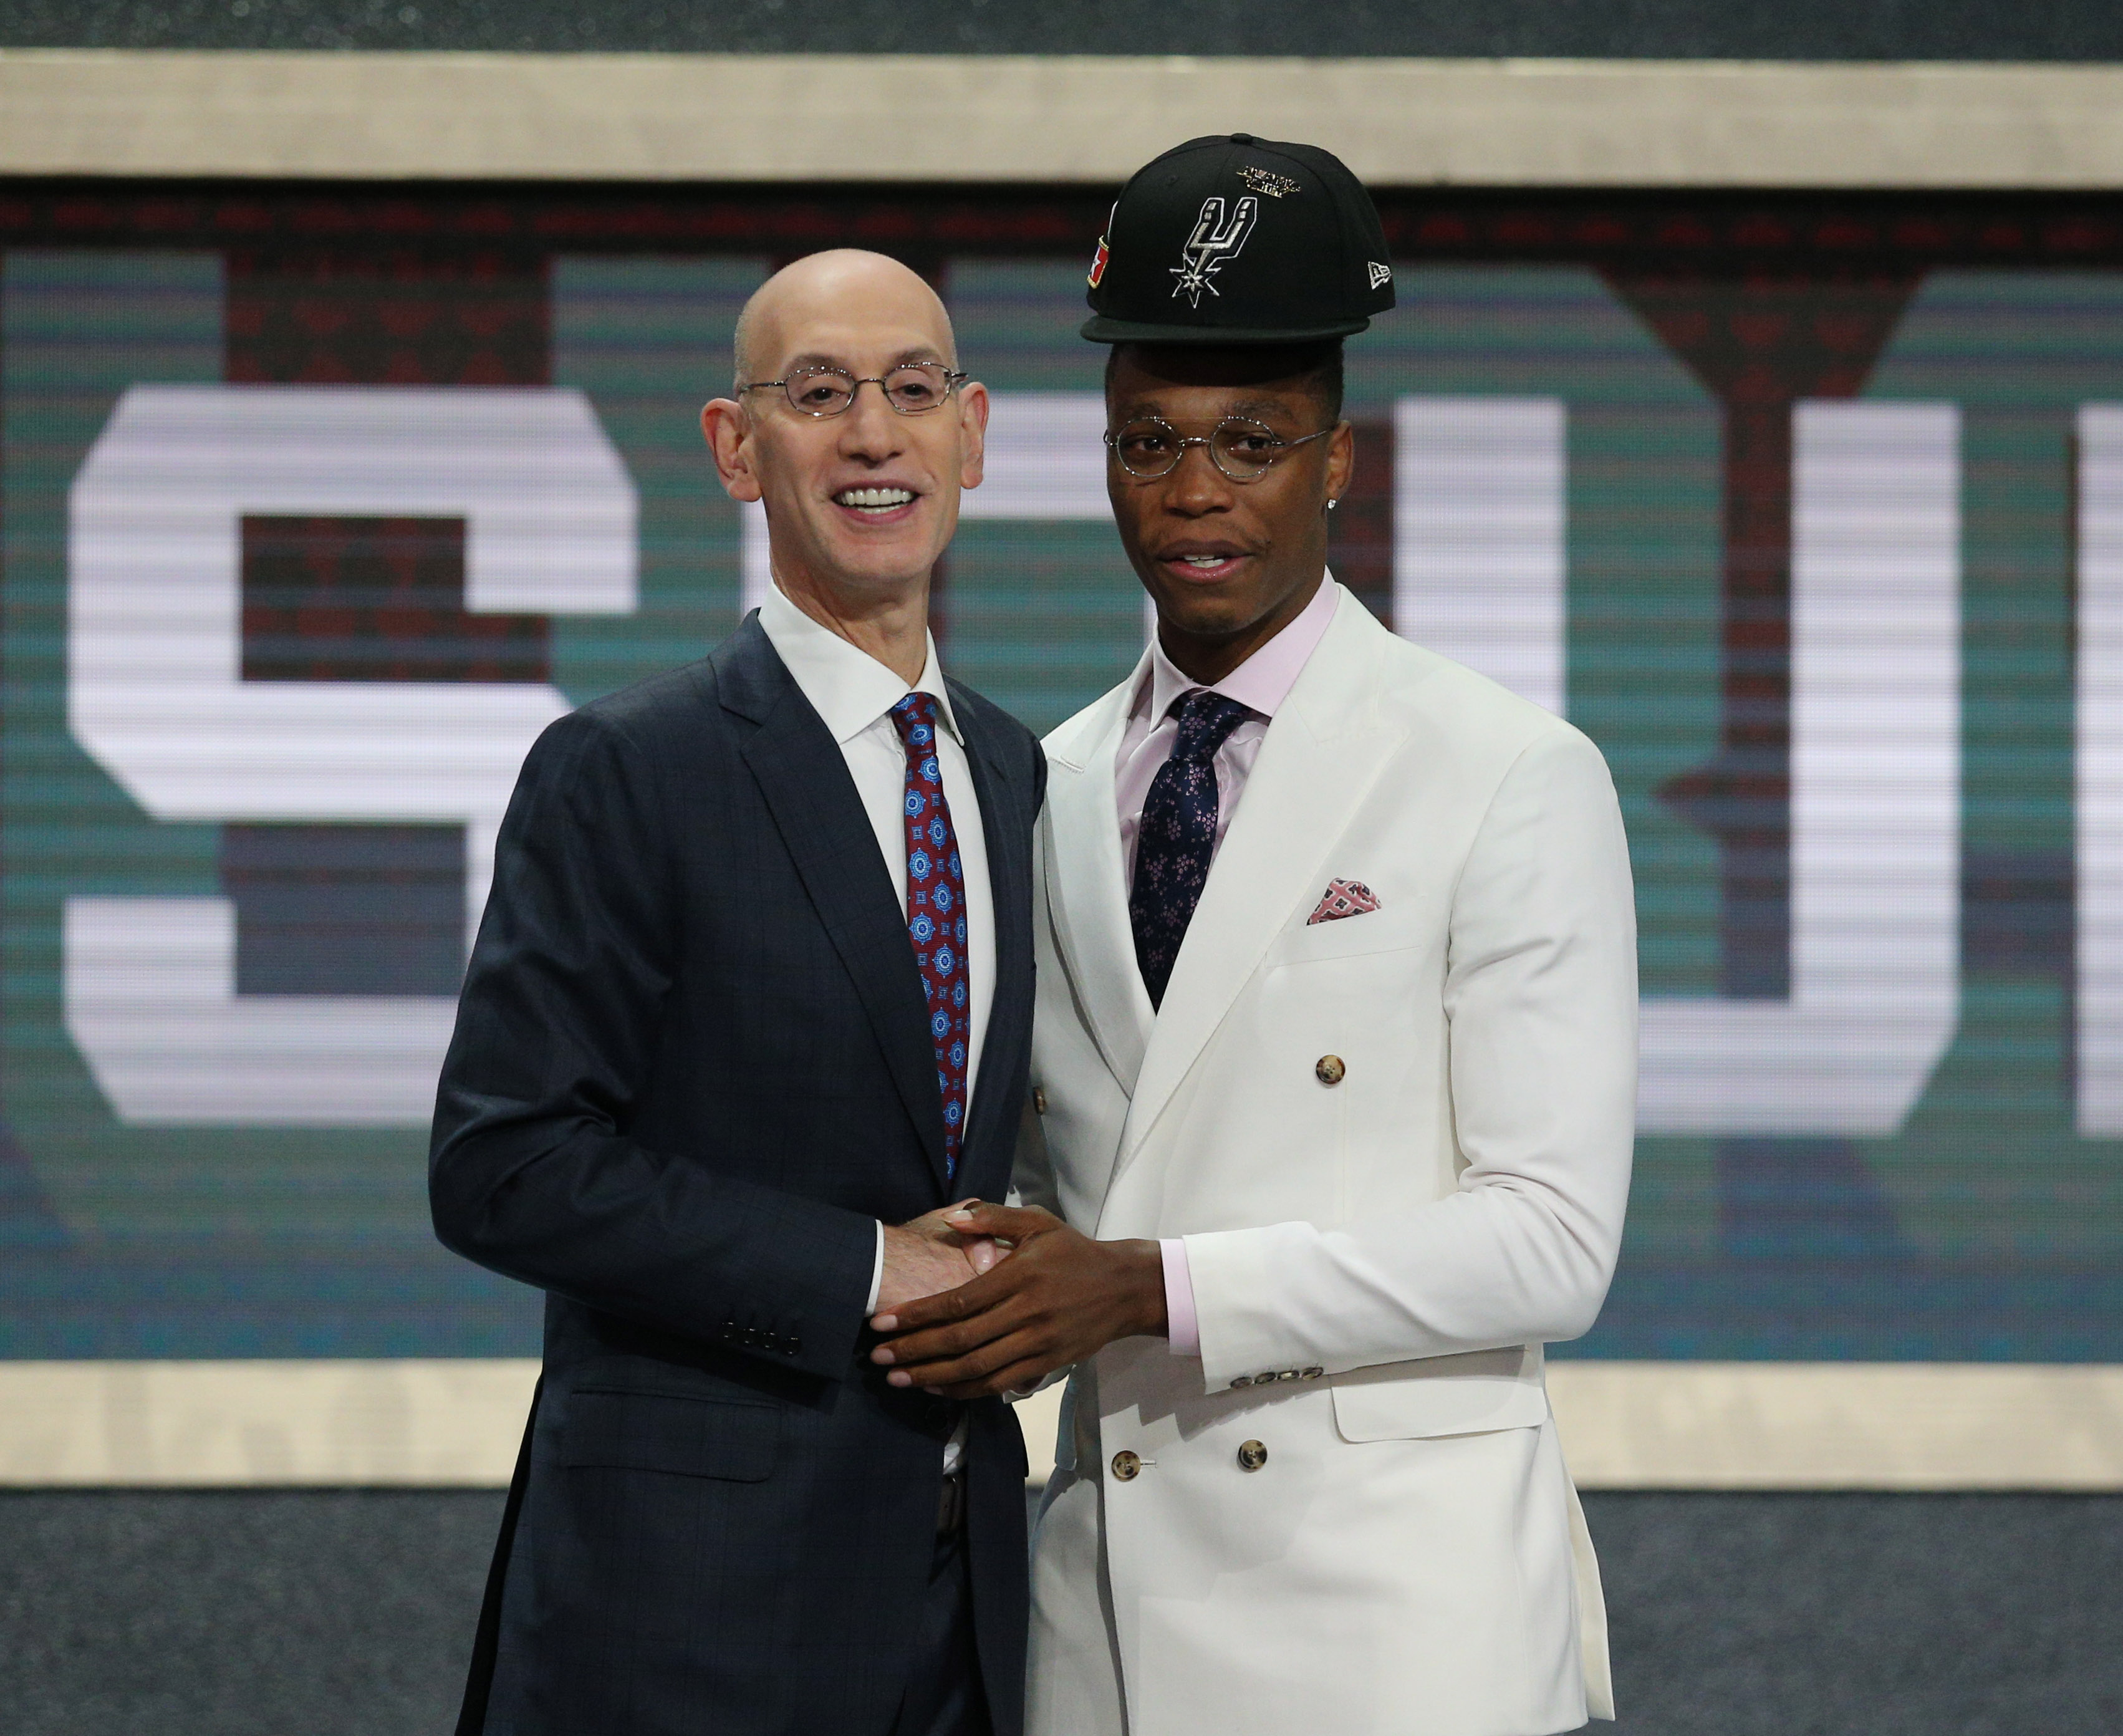 Lonnie Walker's hair caused funny hat fail on draft night